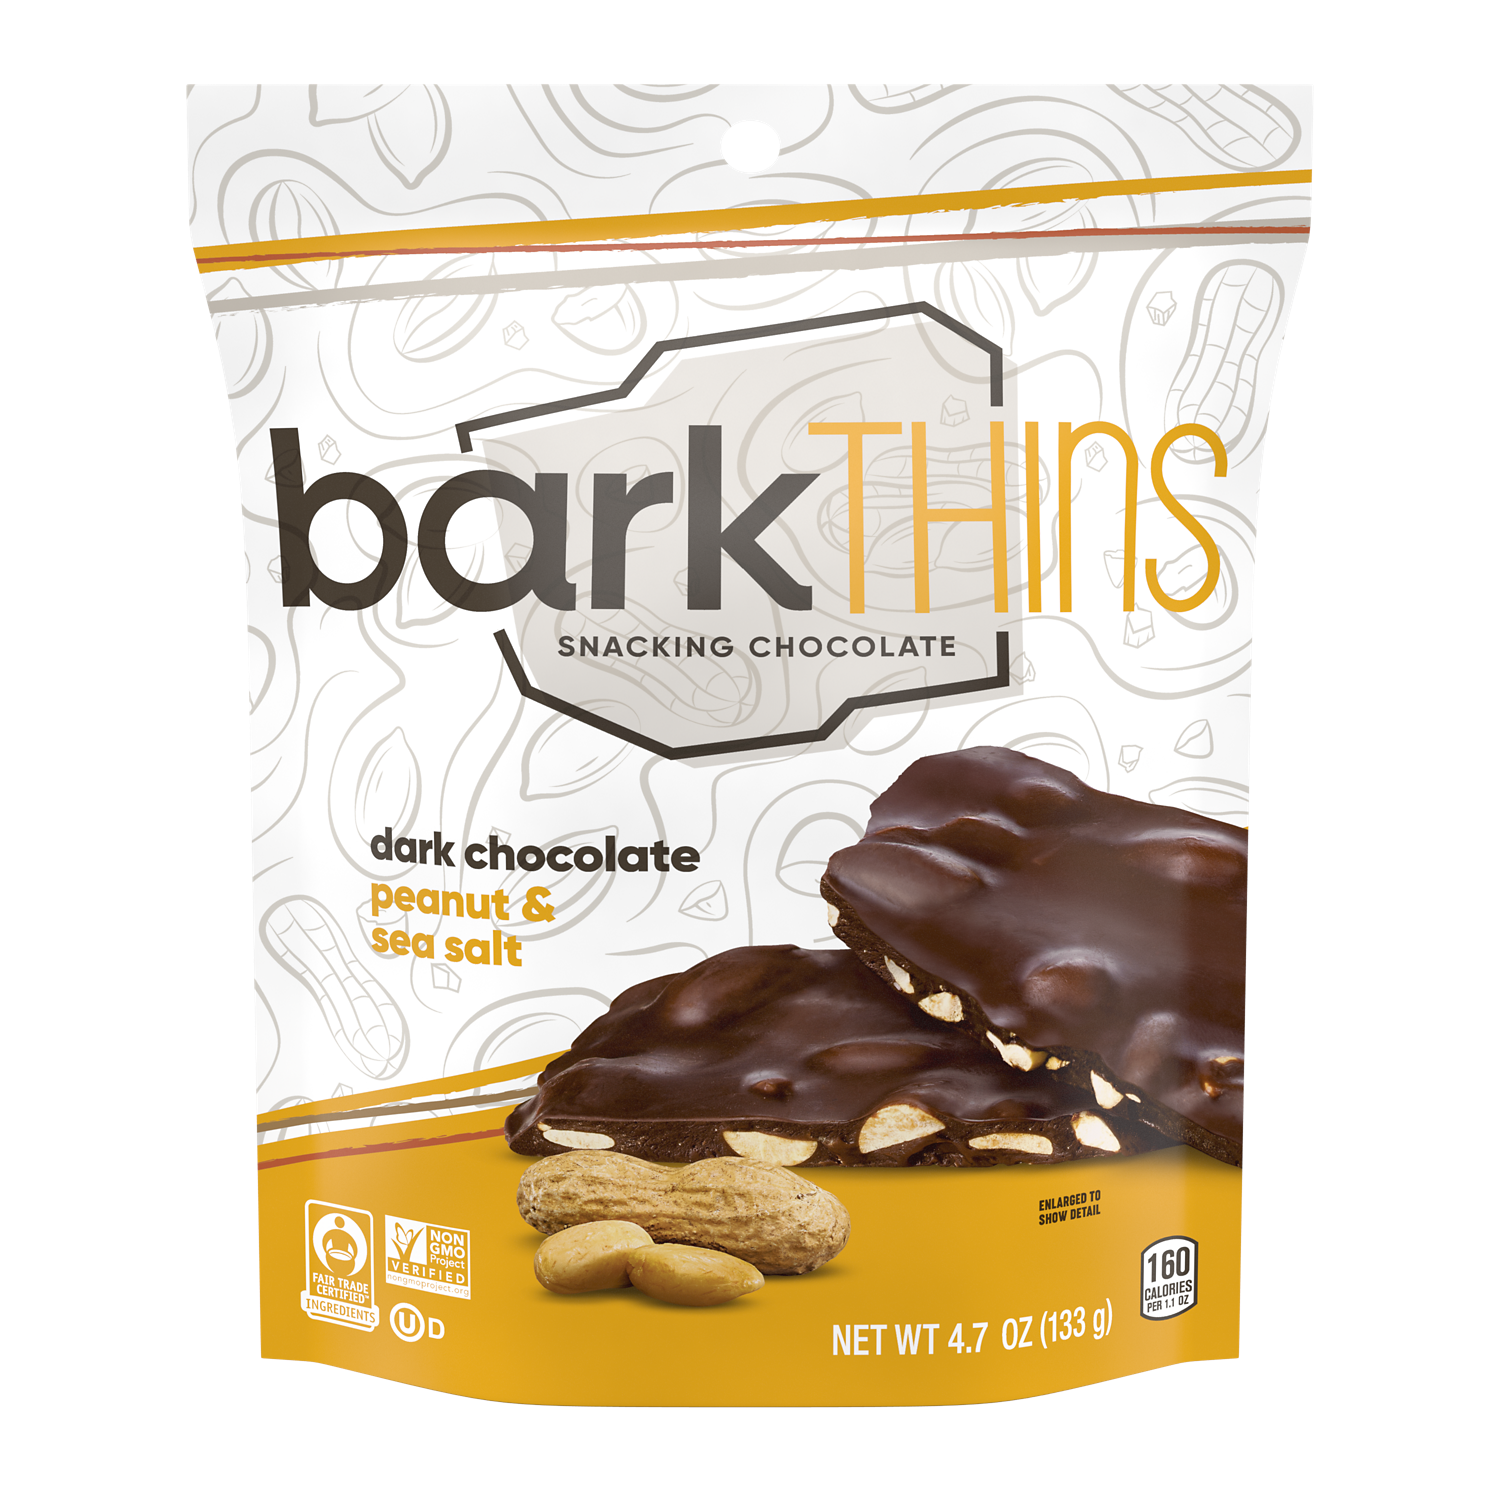 barkTHINS Dark Chocolate Peanut & Sea Salt Snacking Chocolate, 4.7 oz bag - Front of Package